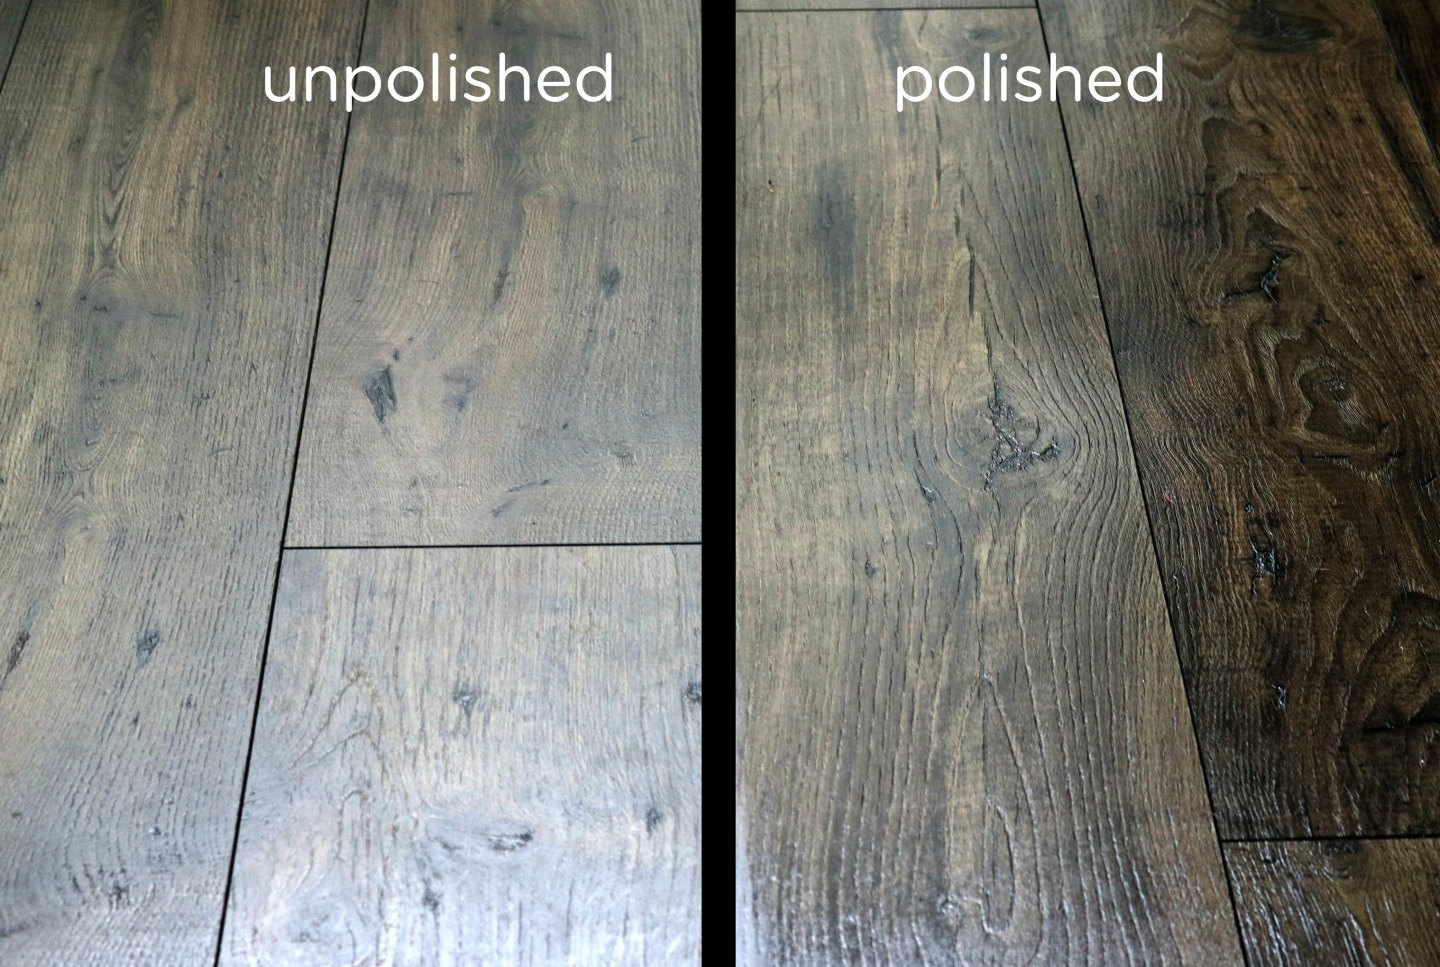 Homemade floor polish recipe to restore shine to wood ehow for Hardwood floors dull after cleaning